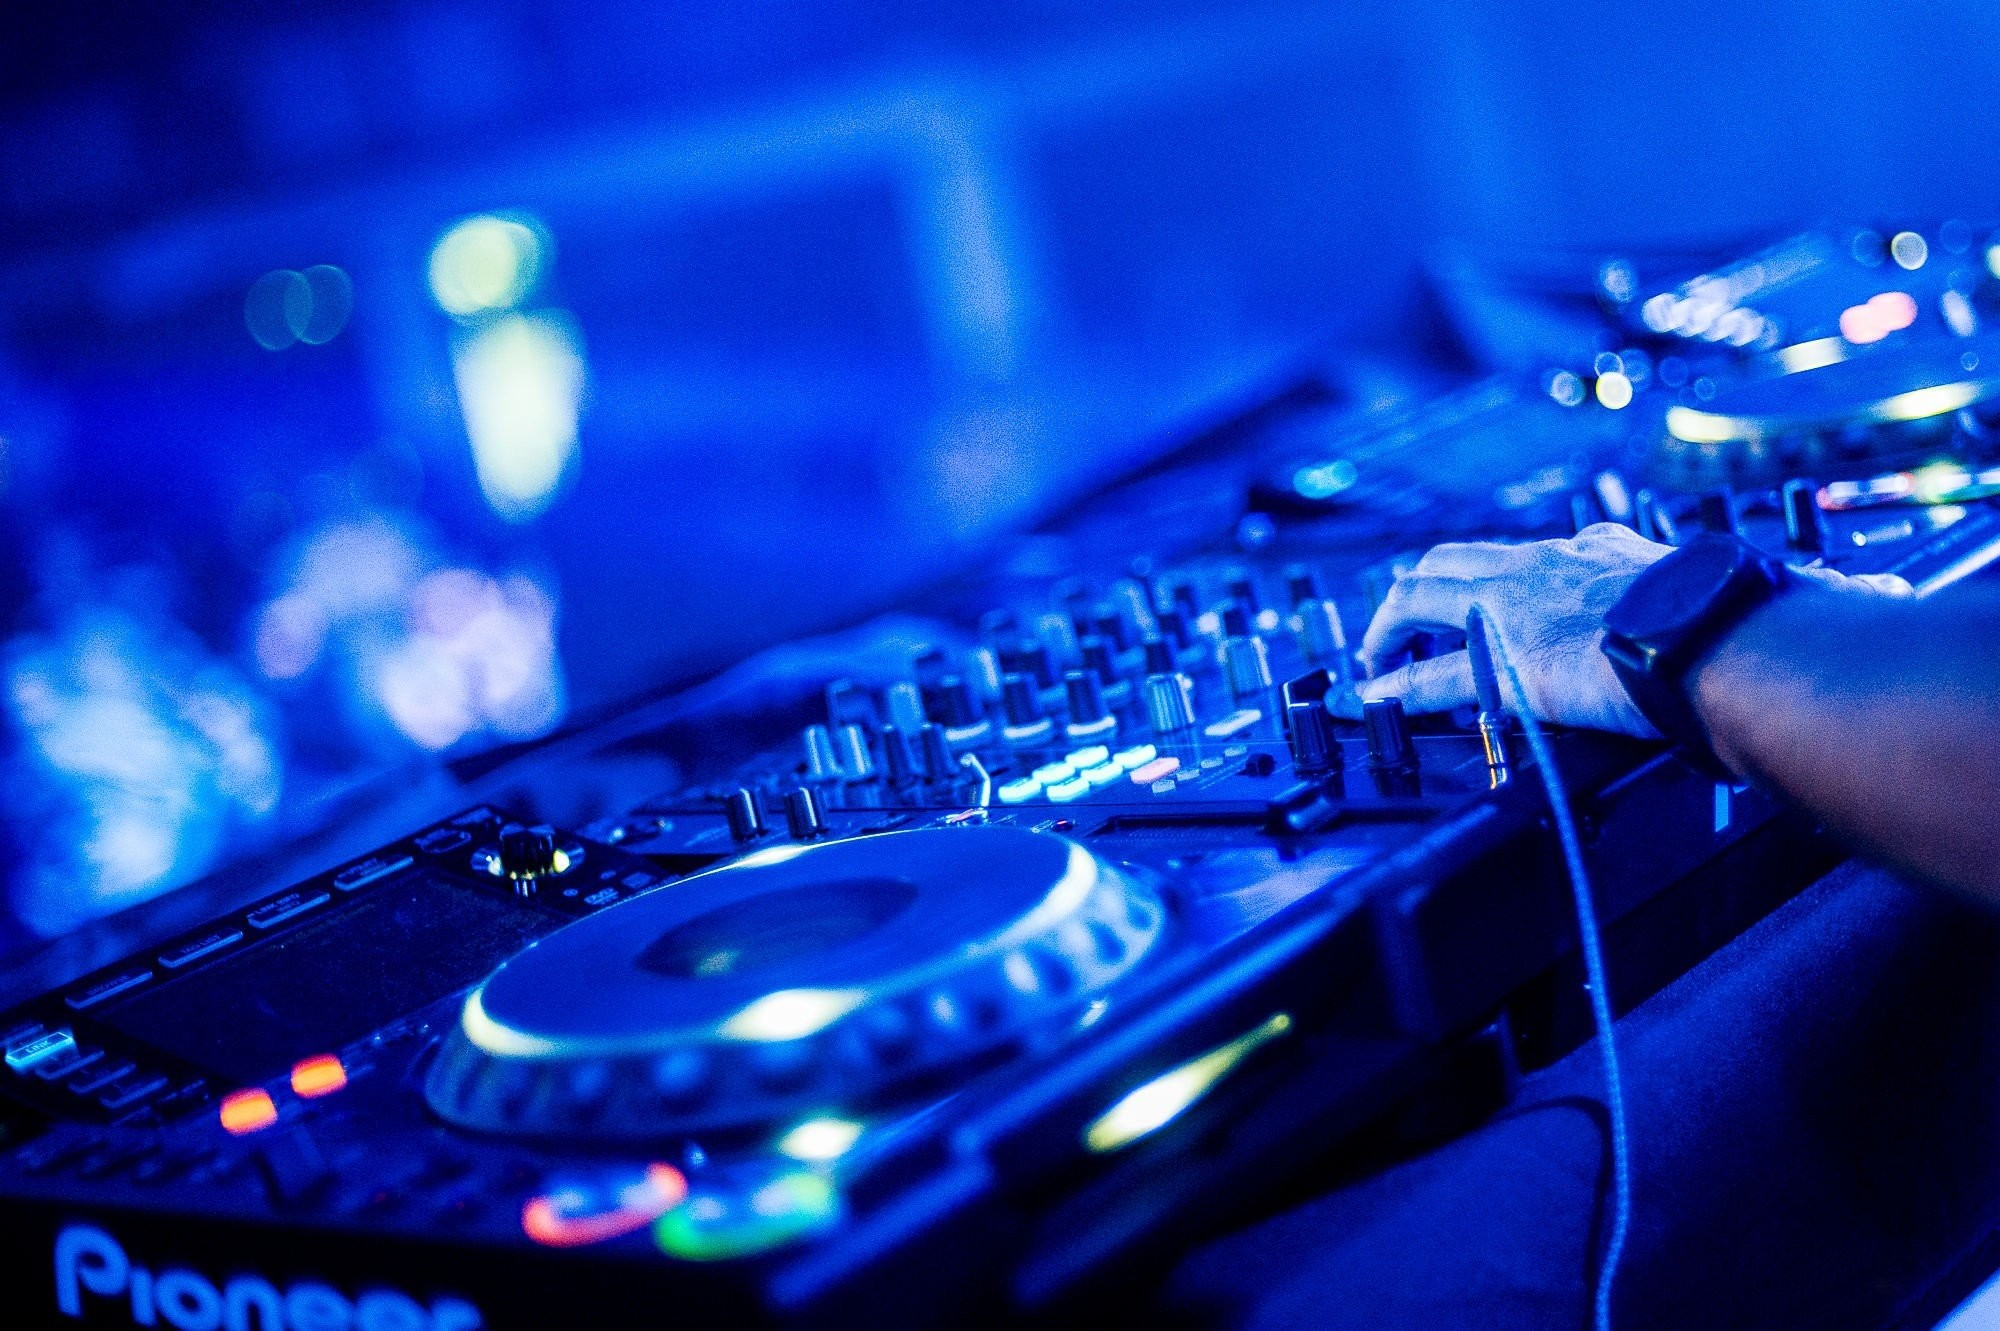 Dj Turntable Wallpapers 67 Background Pictures